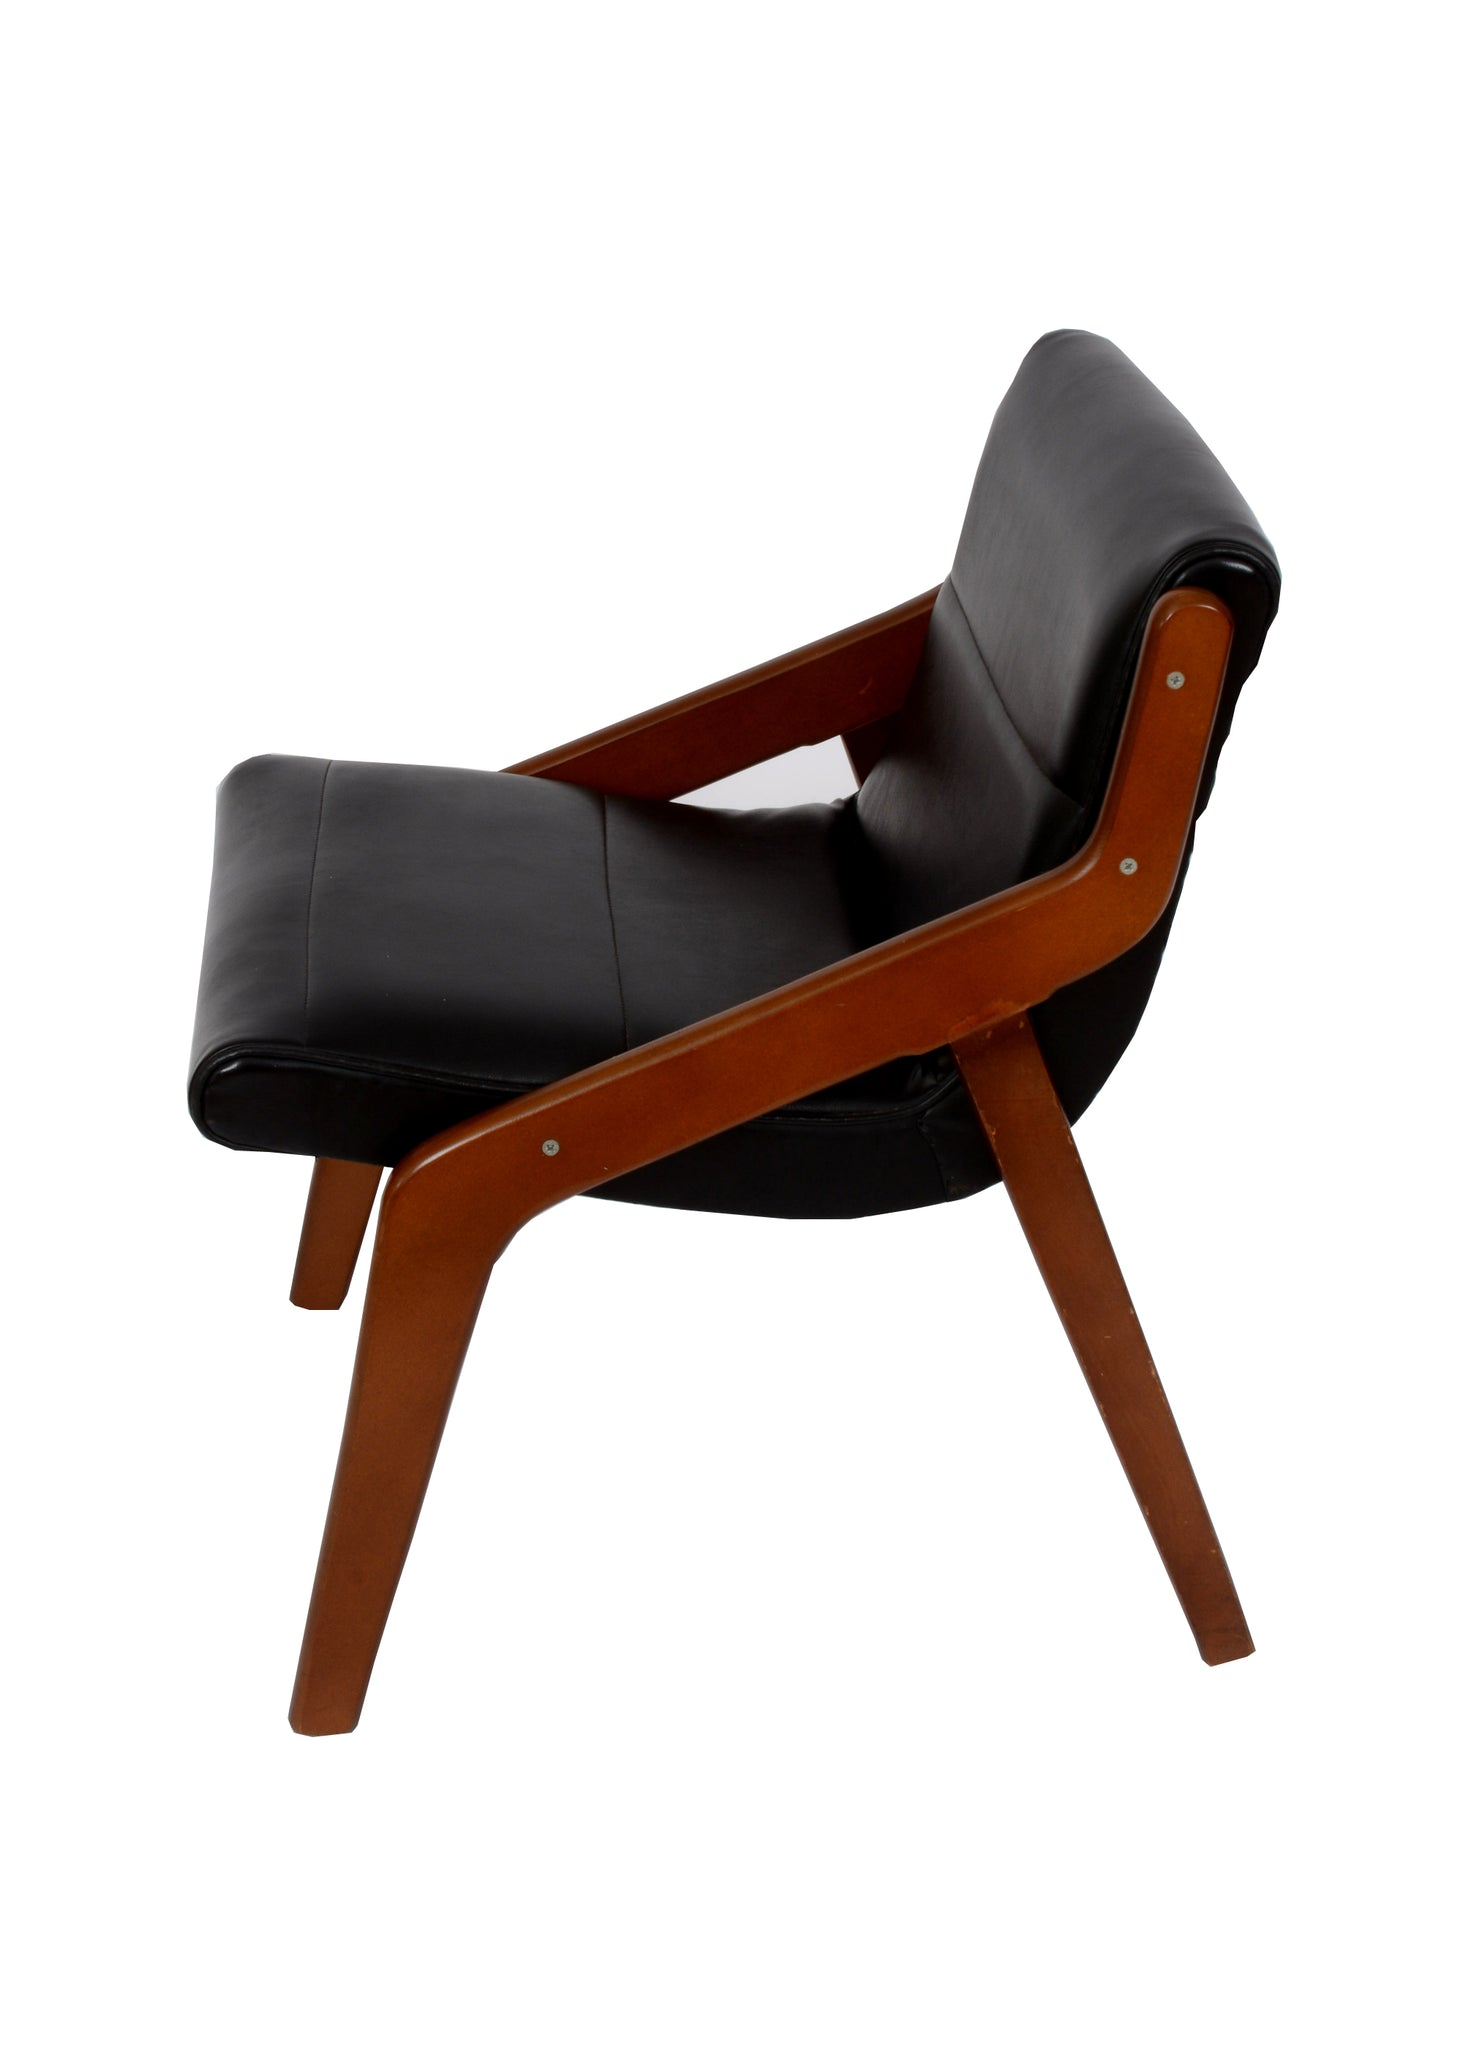 Lounge Chair inspired by Neil Morris of Glasgow.